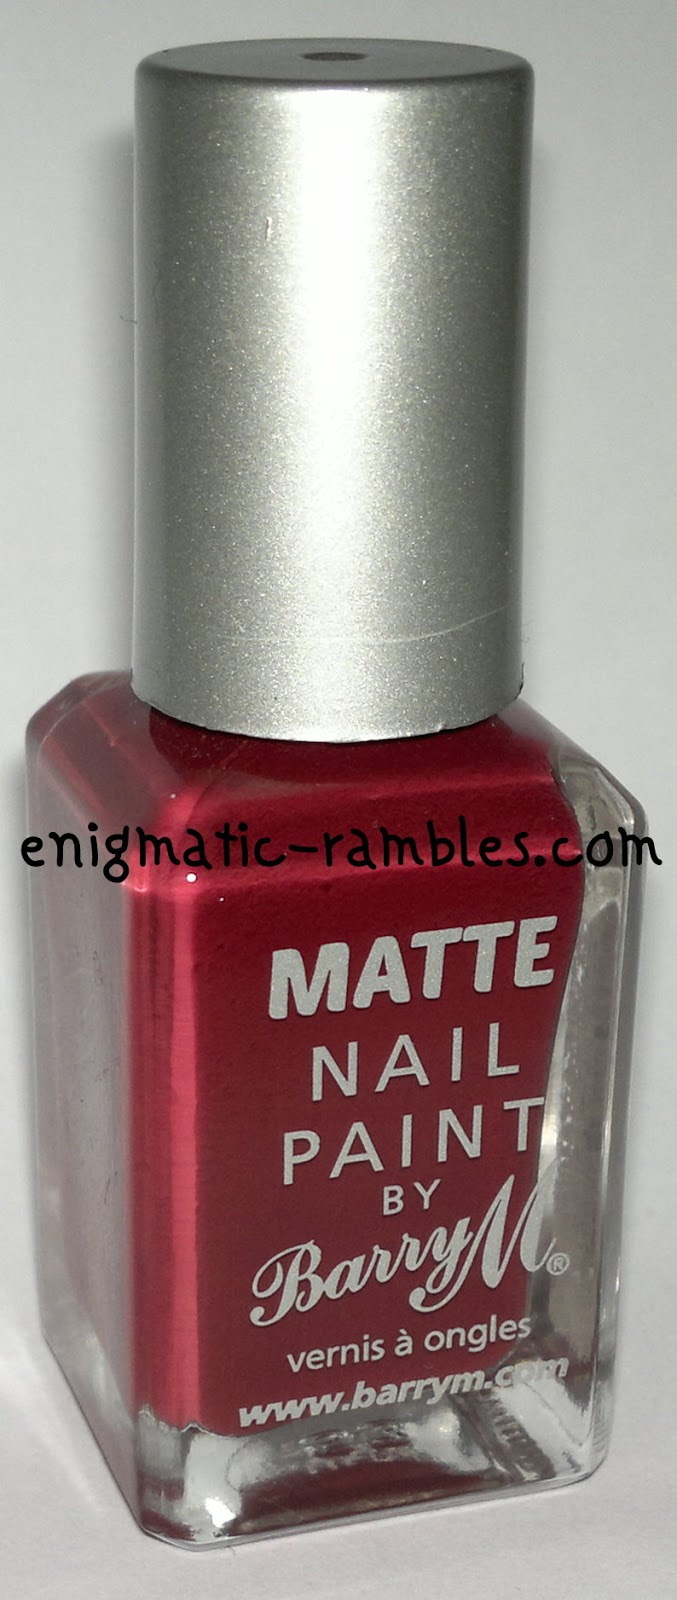 swatch-barry-m-crush-matte